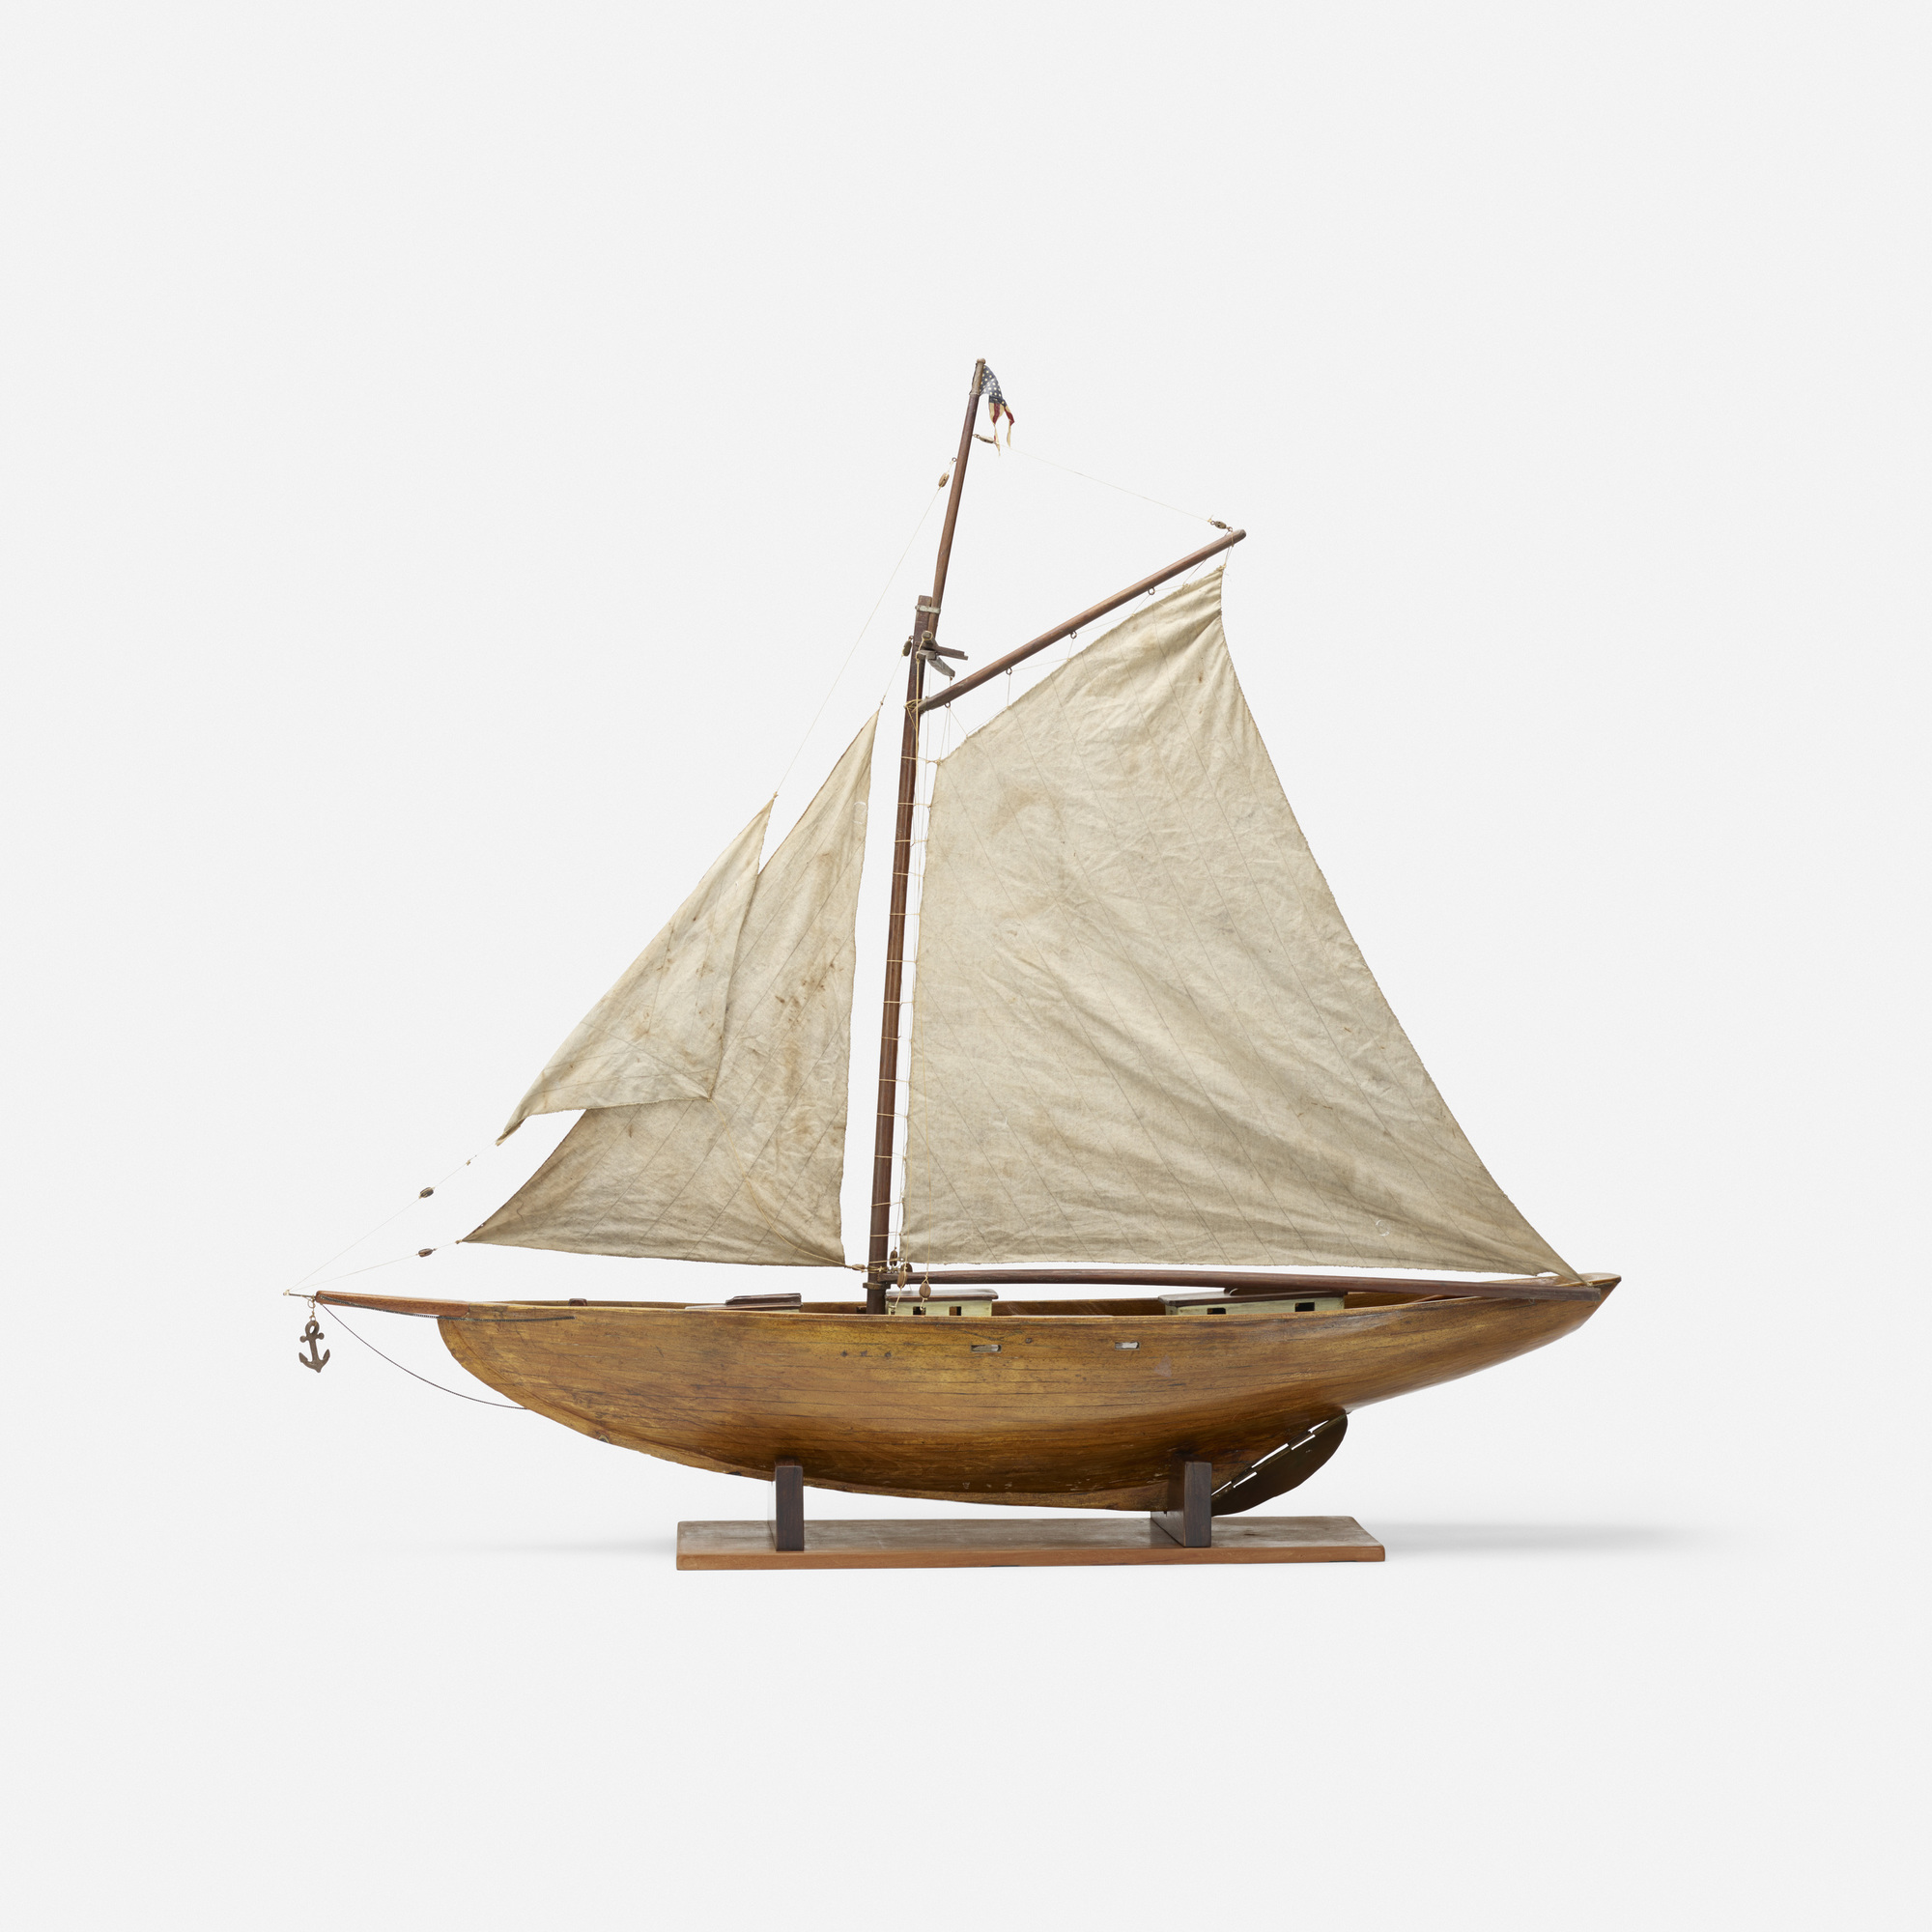 111: Early 20th Century / sailboat model (2 of 3)